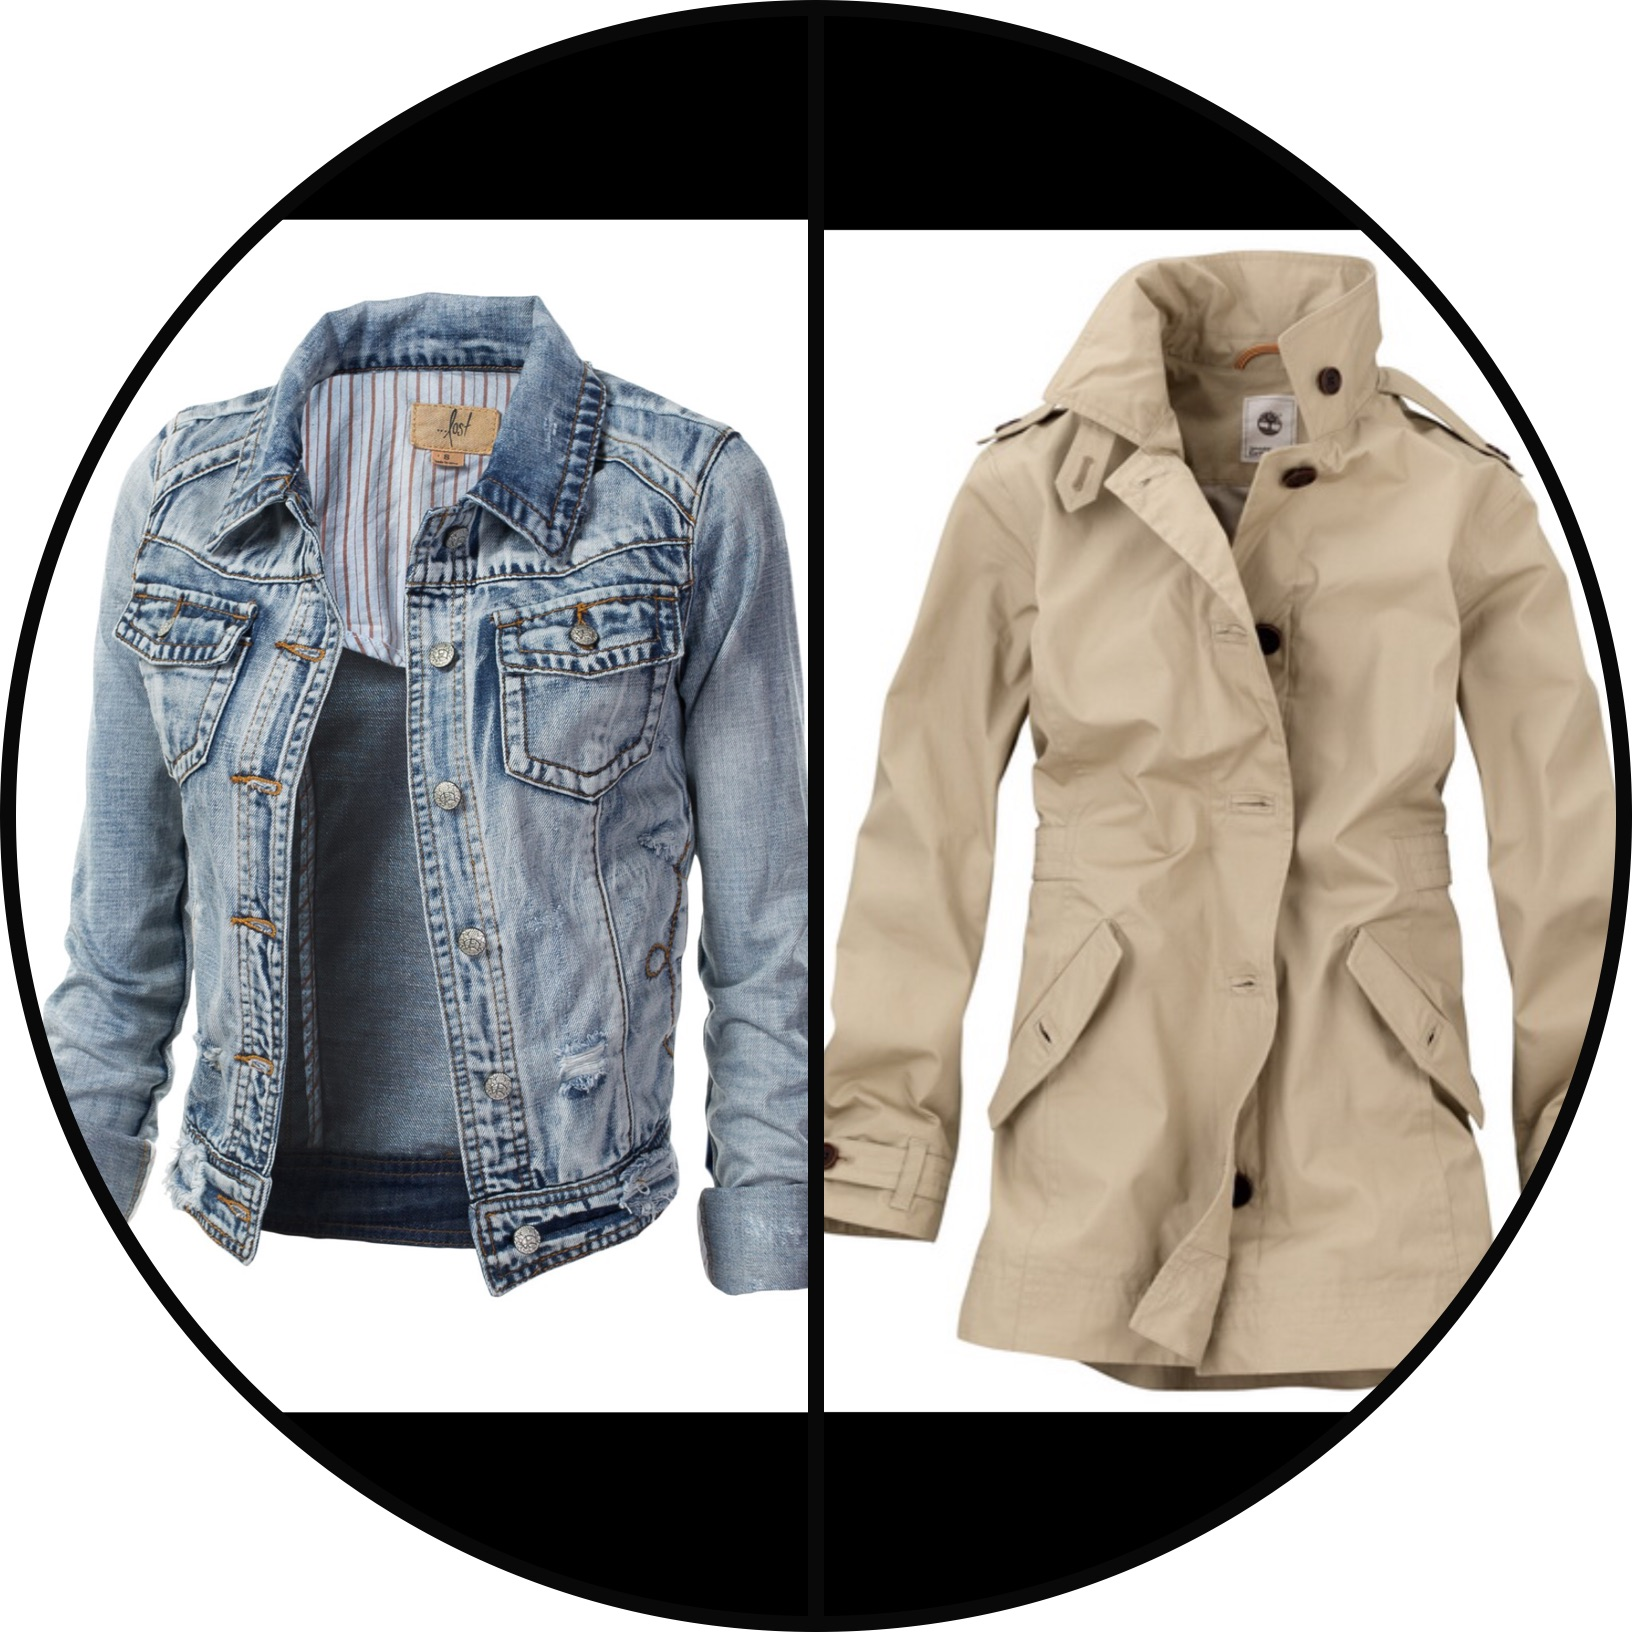 Great easy coats to wear and super cute!